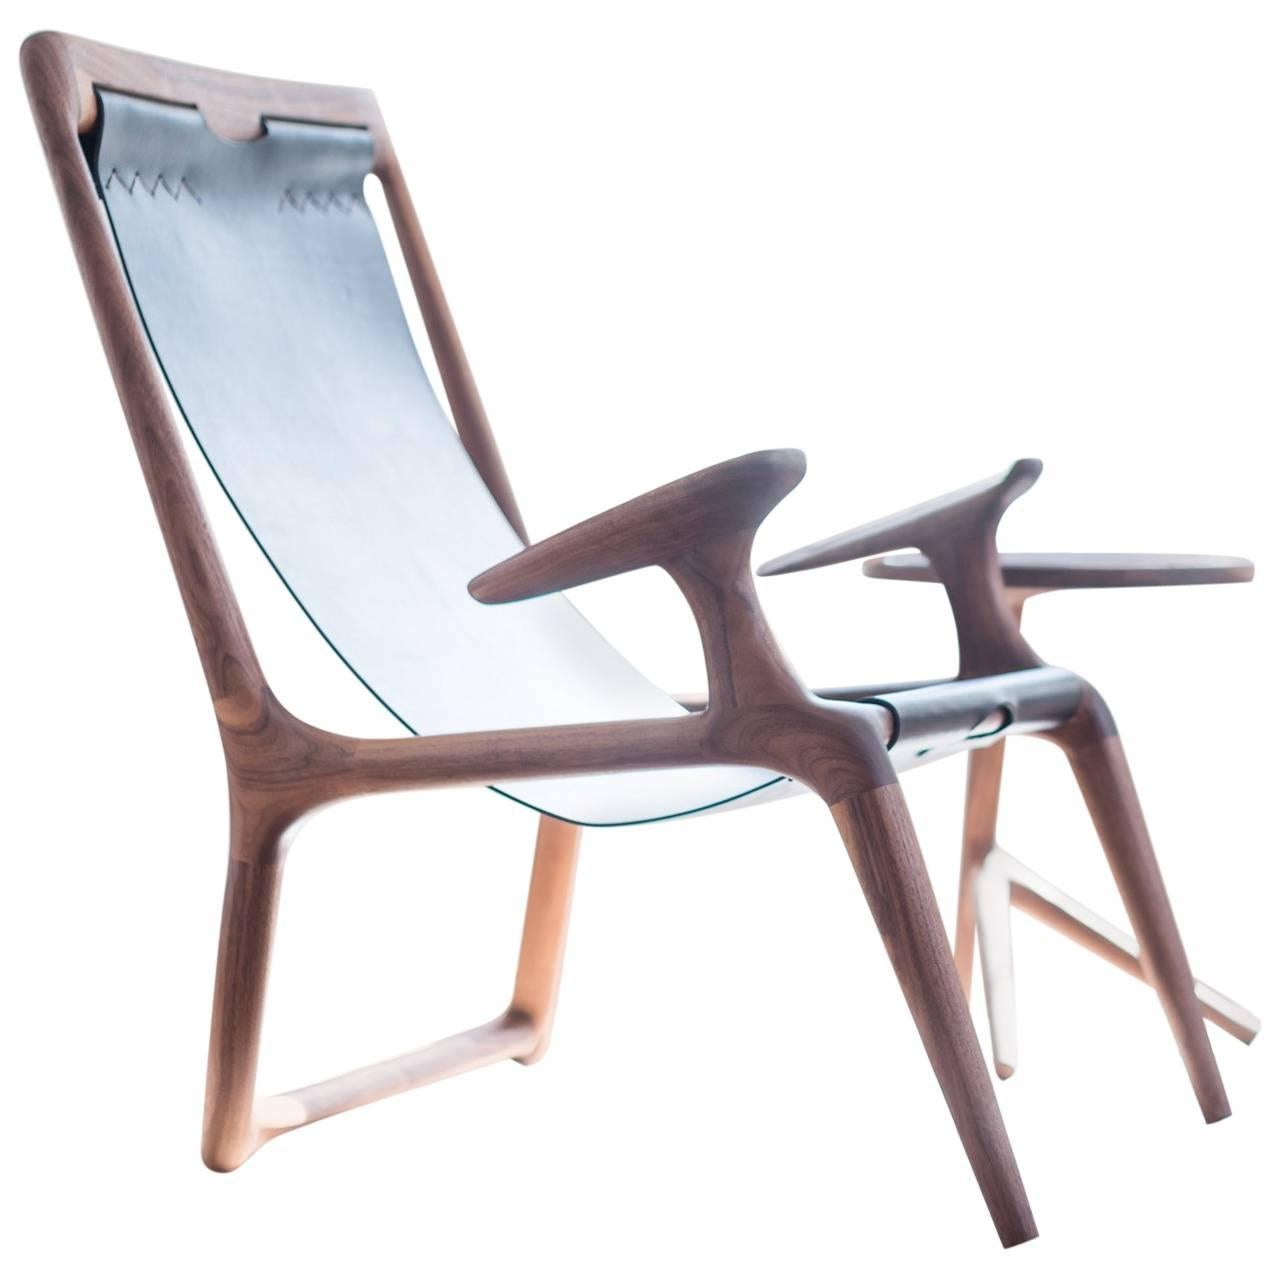 Sling Chair with Leather, Handmade Lounge Armchair Walnut + Black Leather